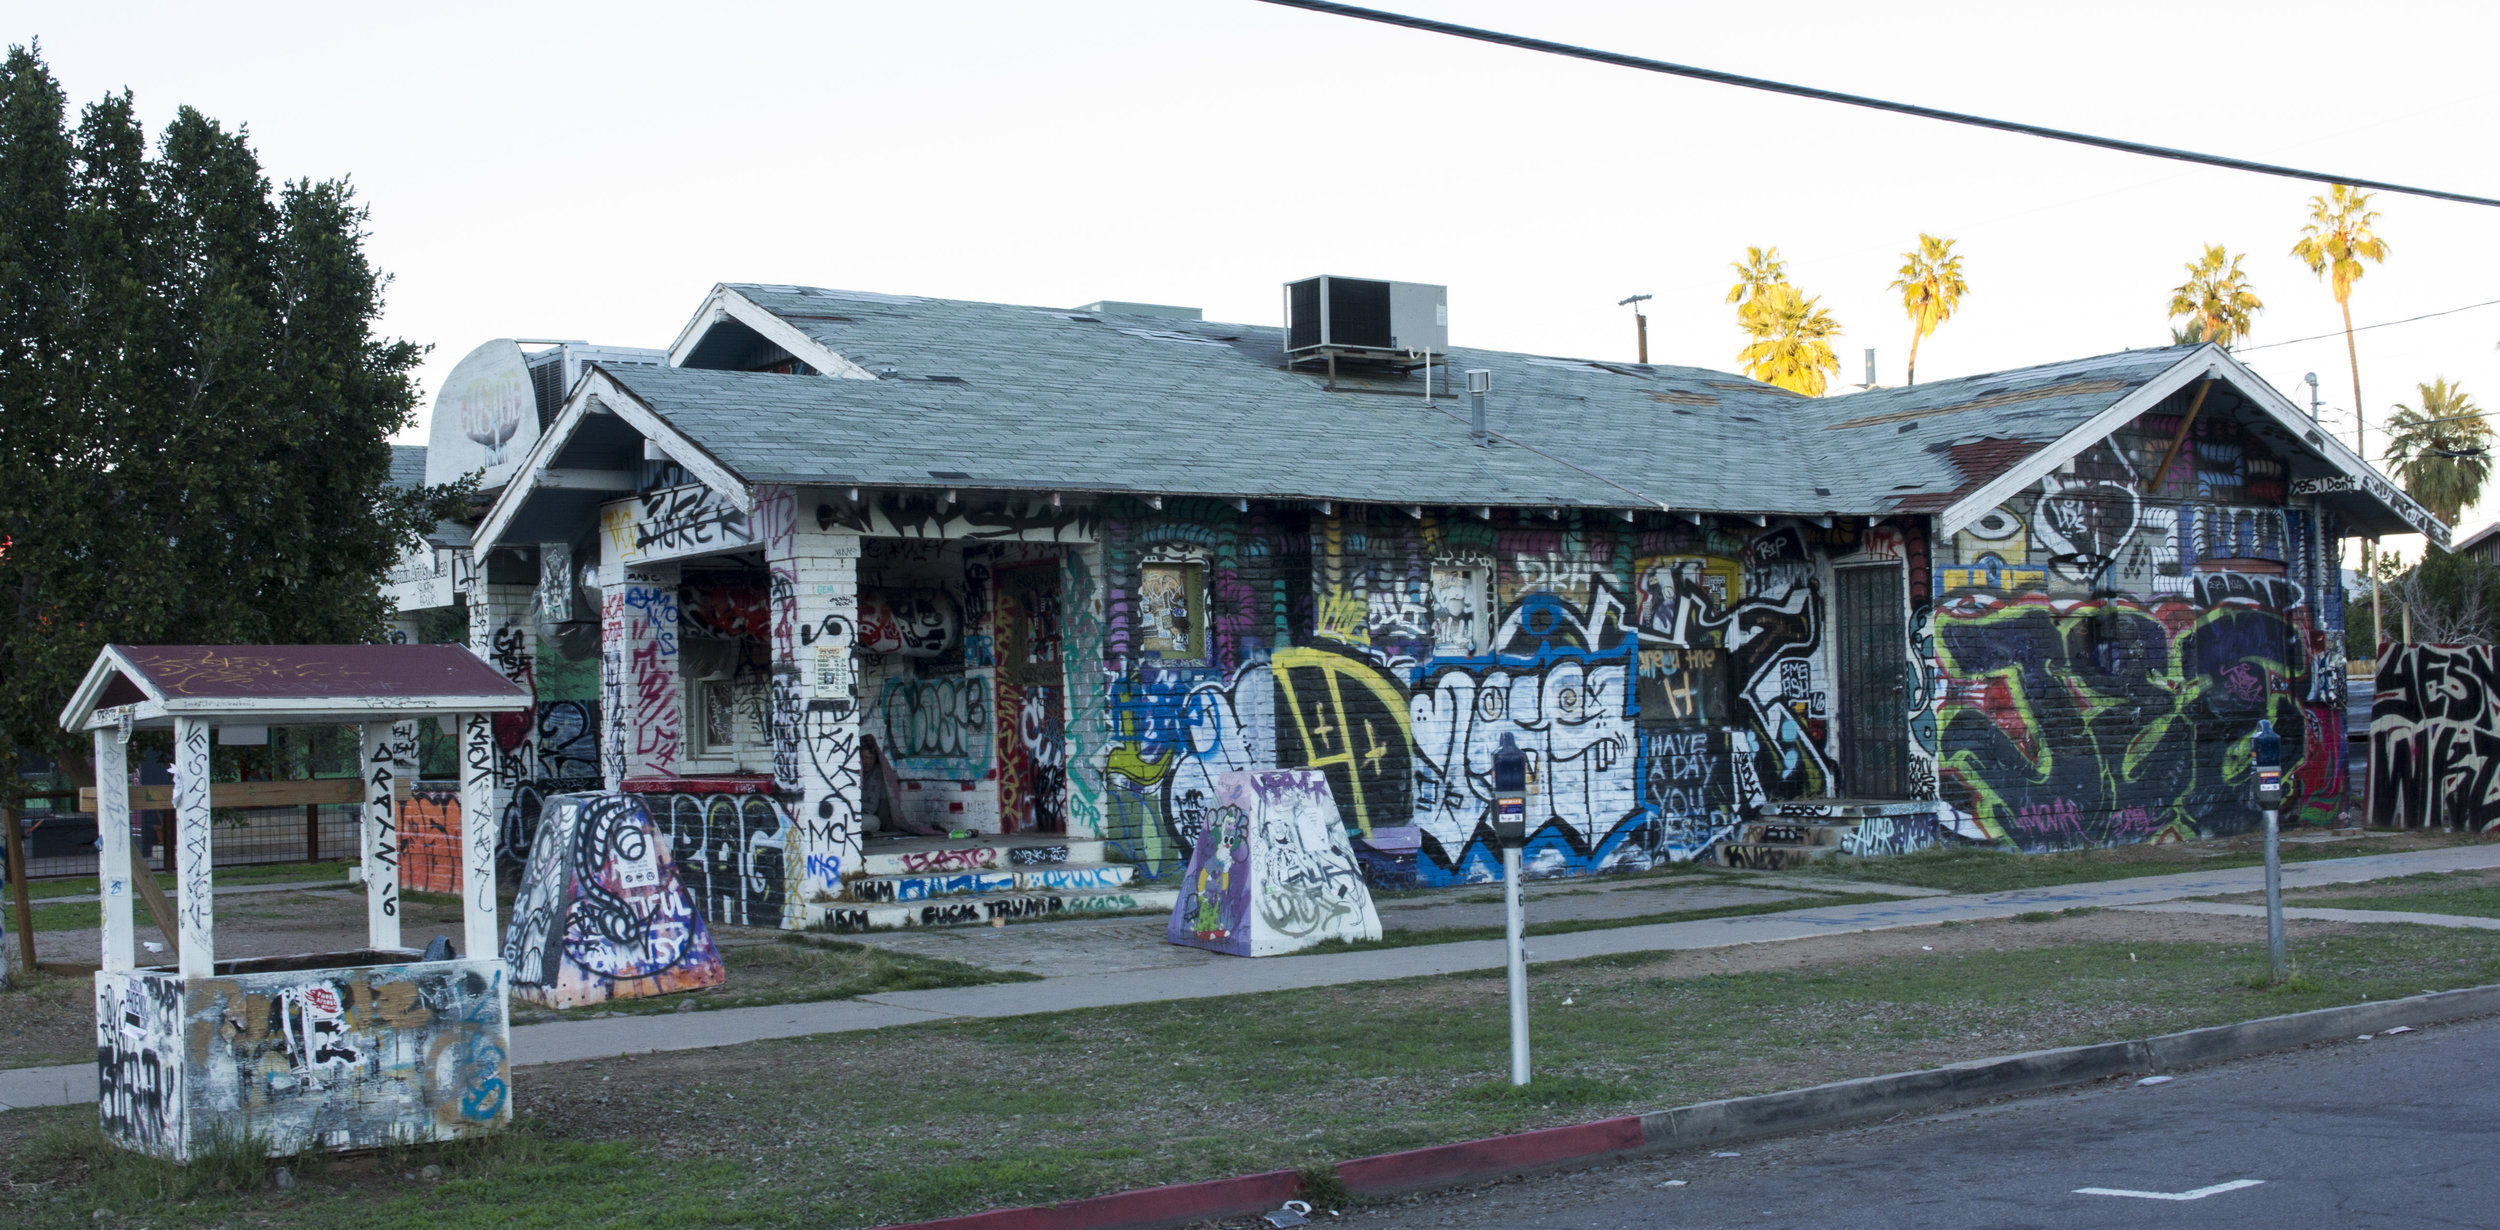 Graffiti house on the corner of E Garfield and 5th St. Photo by Brandon Salaz.